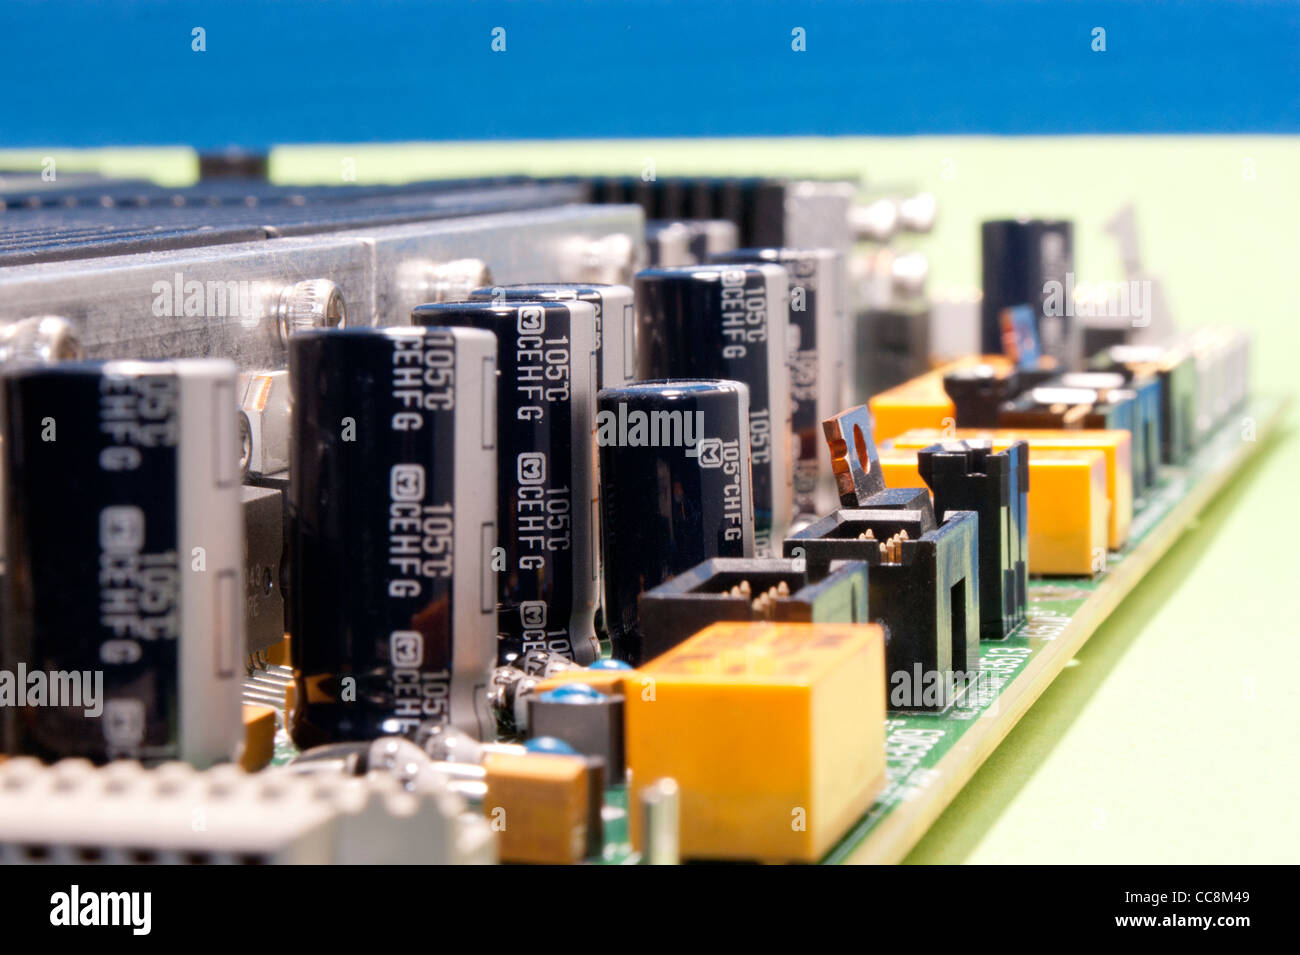 Circuit board - Stock Image